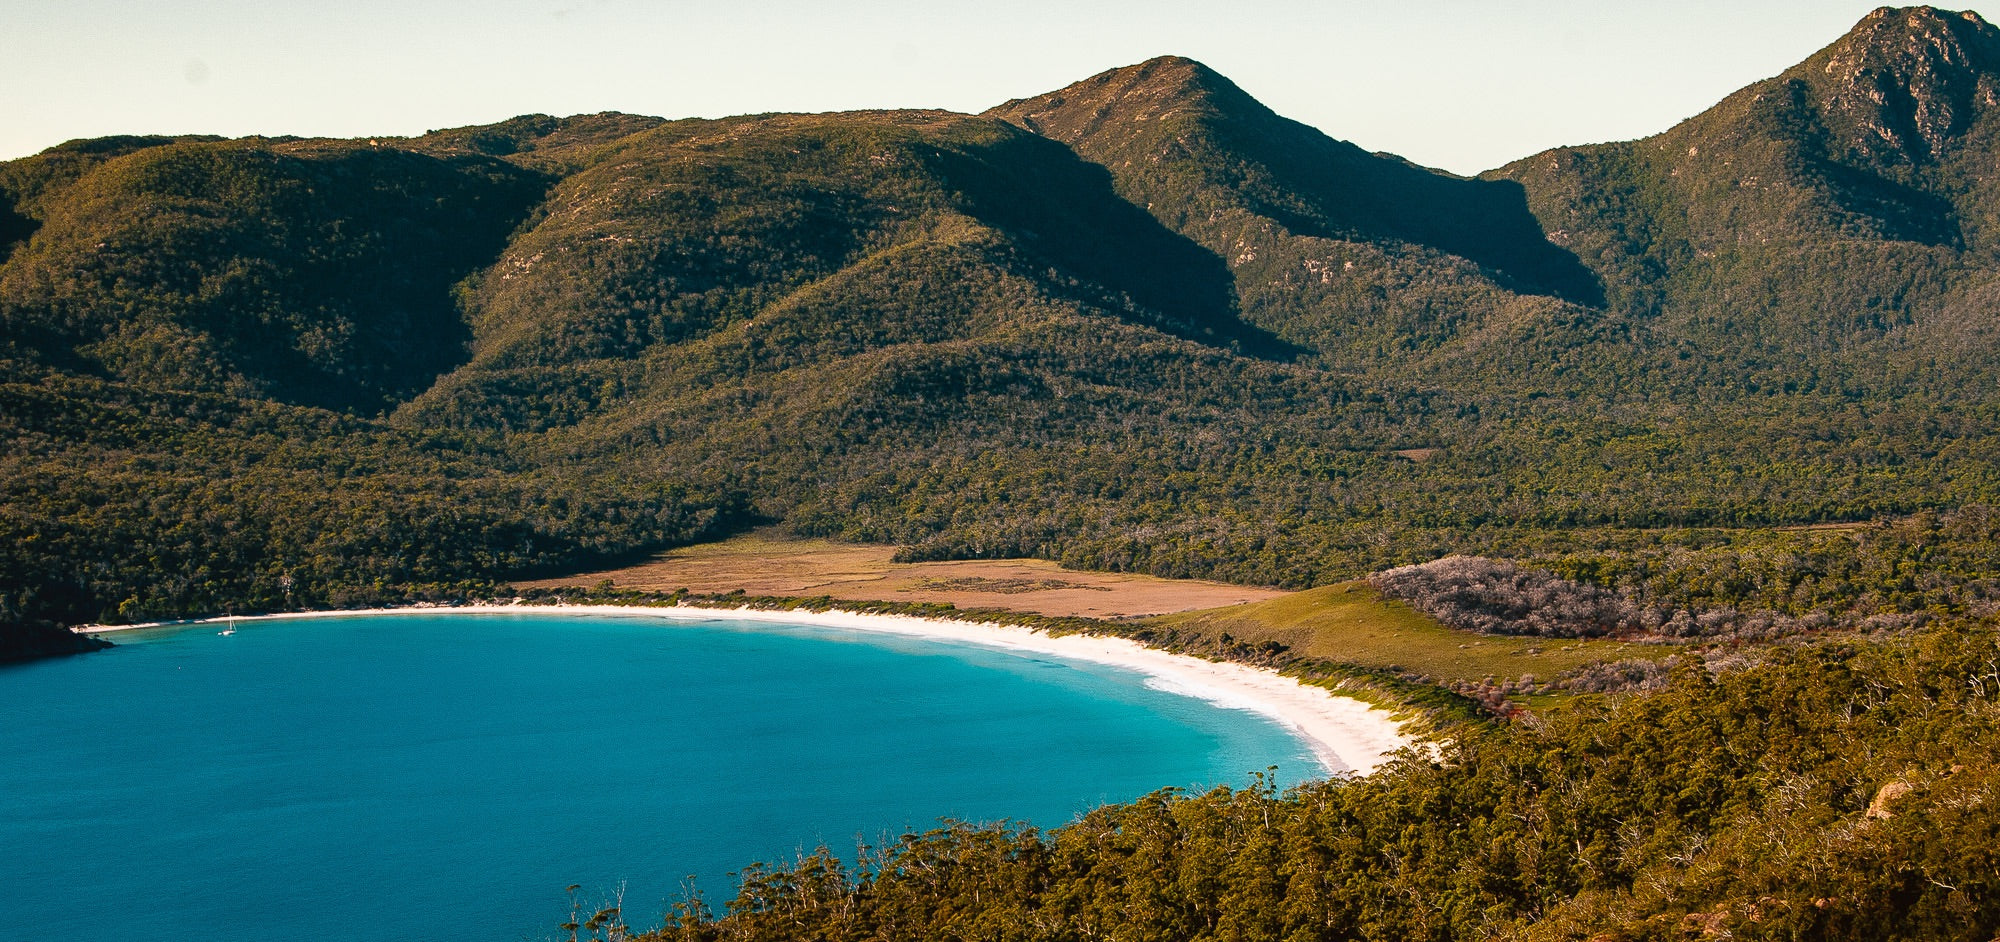 Wineglass Bay - A beautiful white sand beach surrounded by mountains and hills covered in trees with a brilliant blue sea rolling in to the shore.